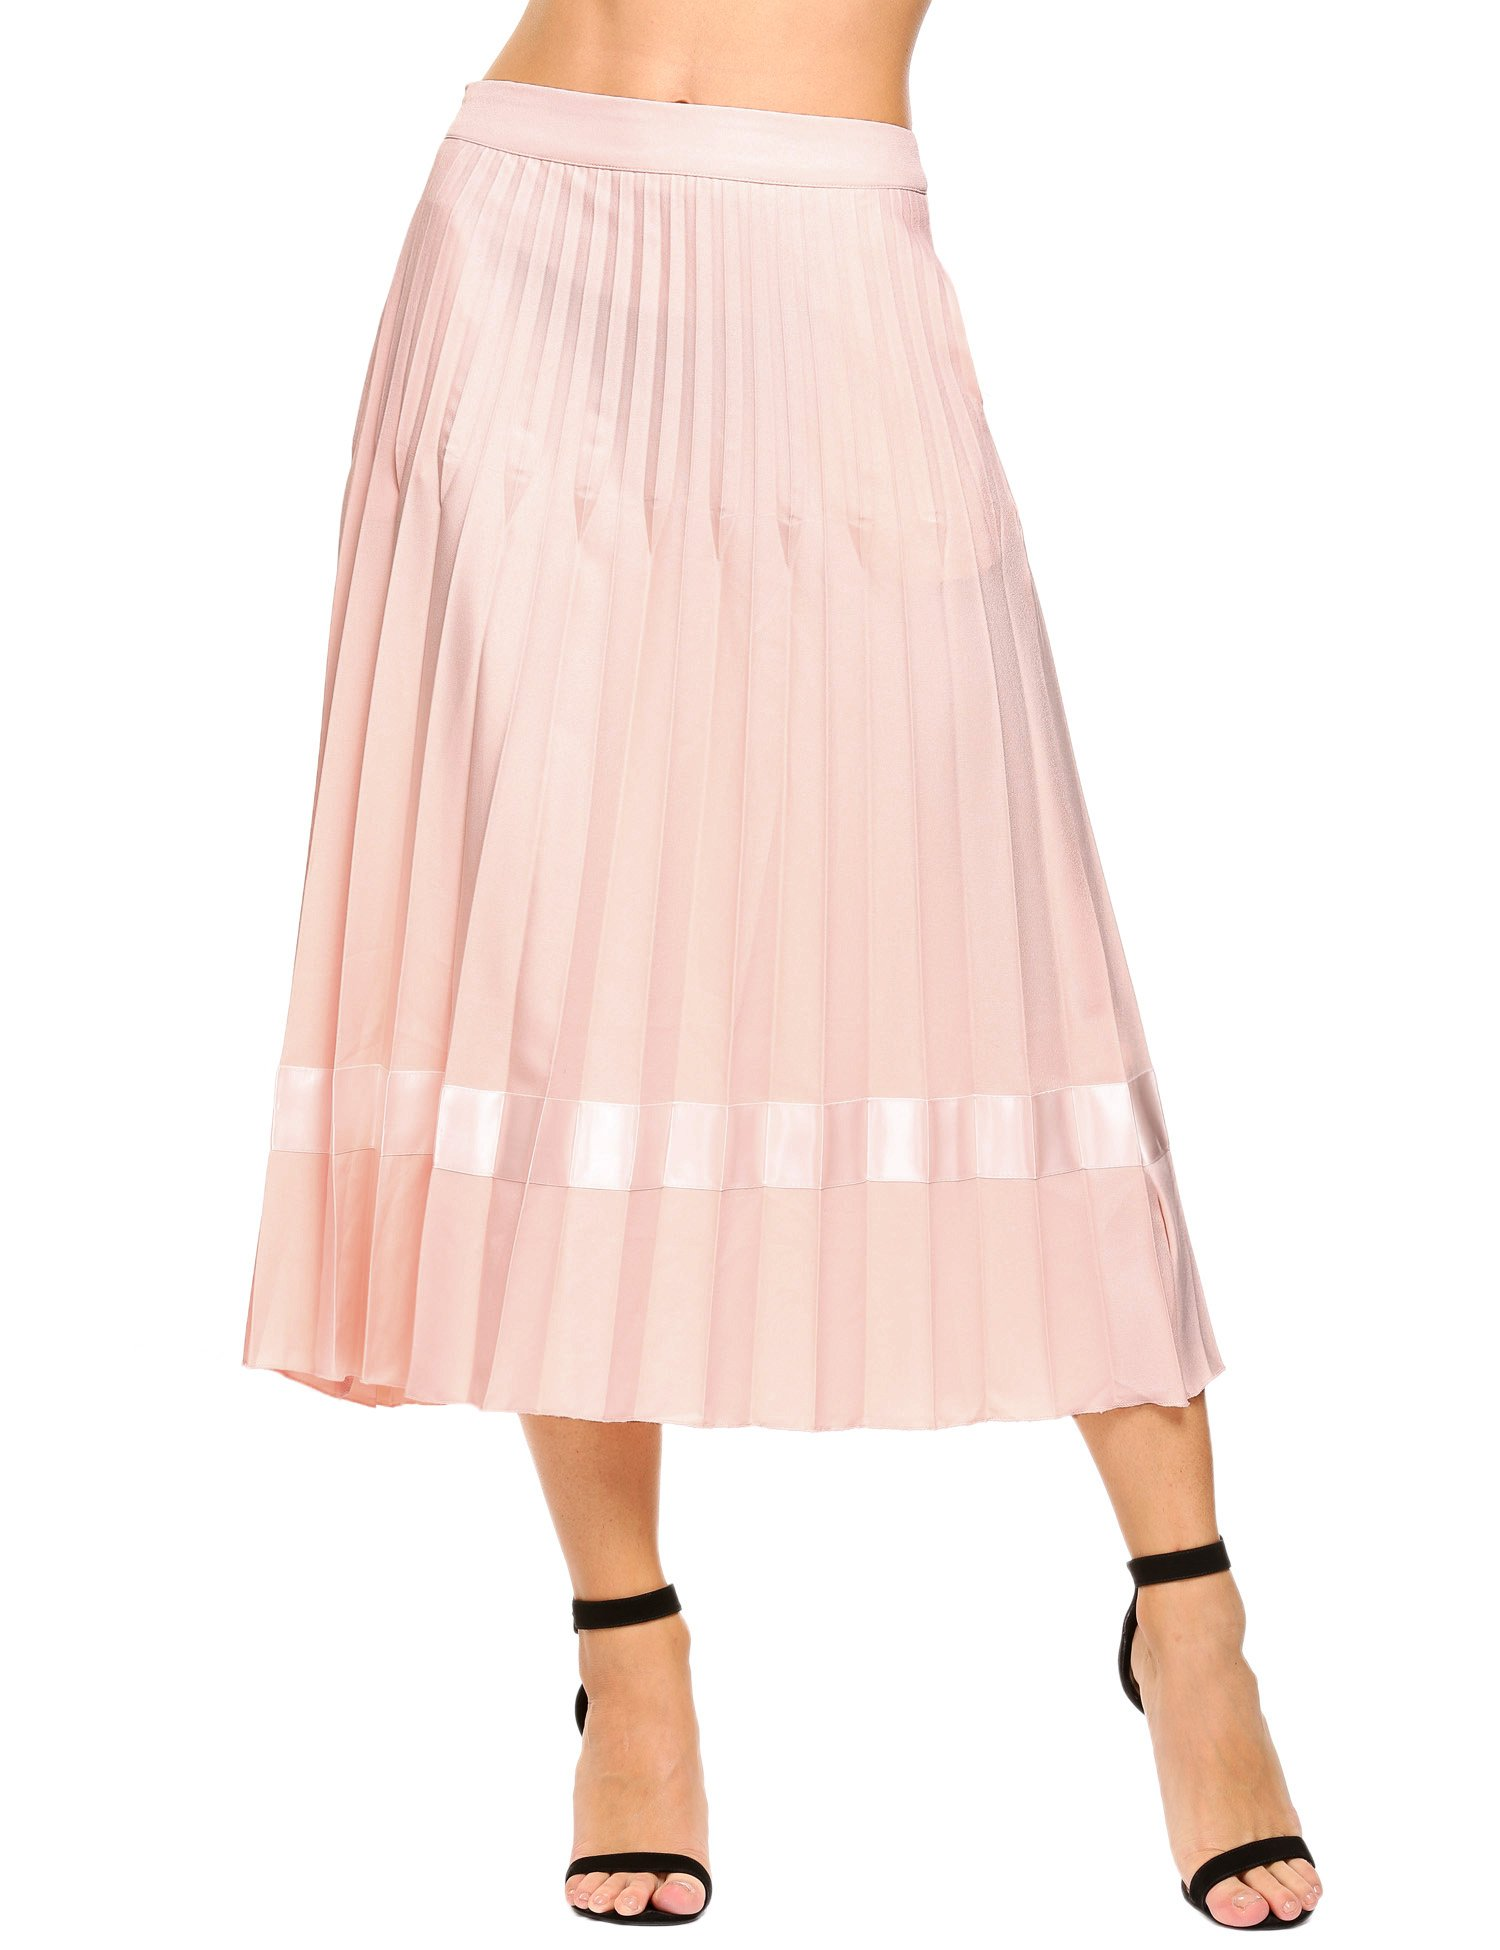 Angvns Women's High Waist Pleated A Line Midi Long Skirt with Pockets